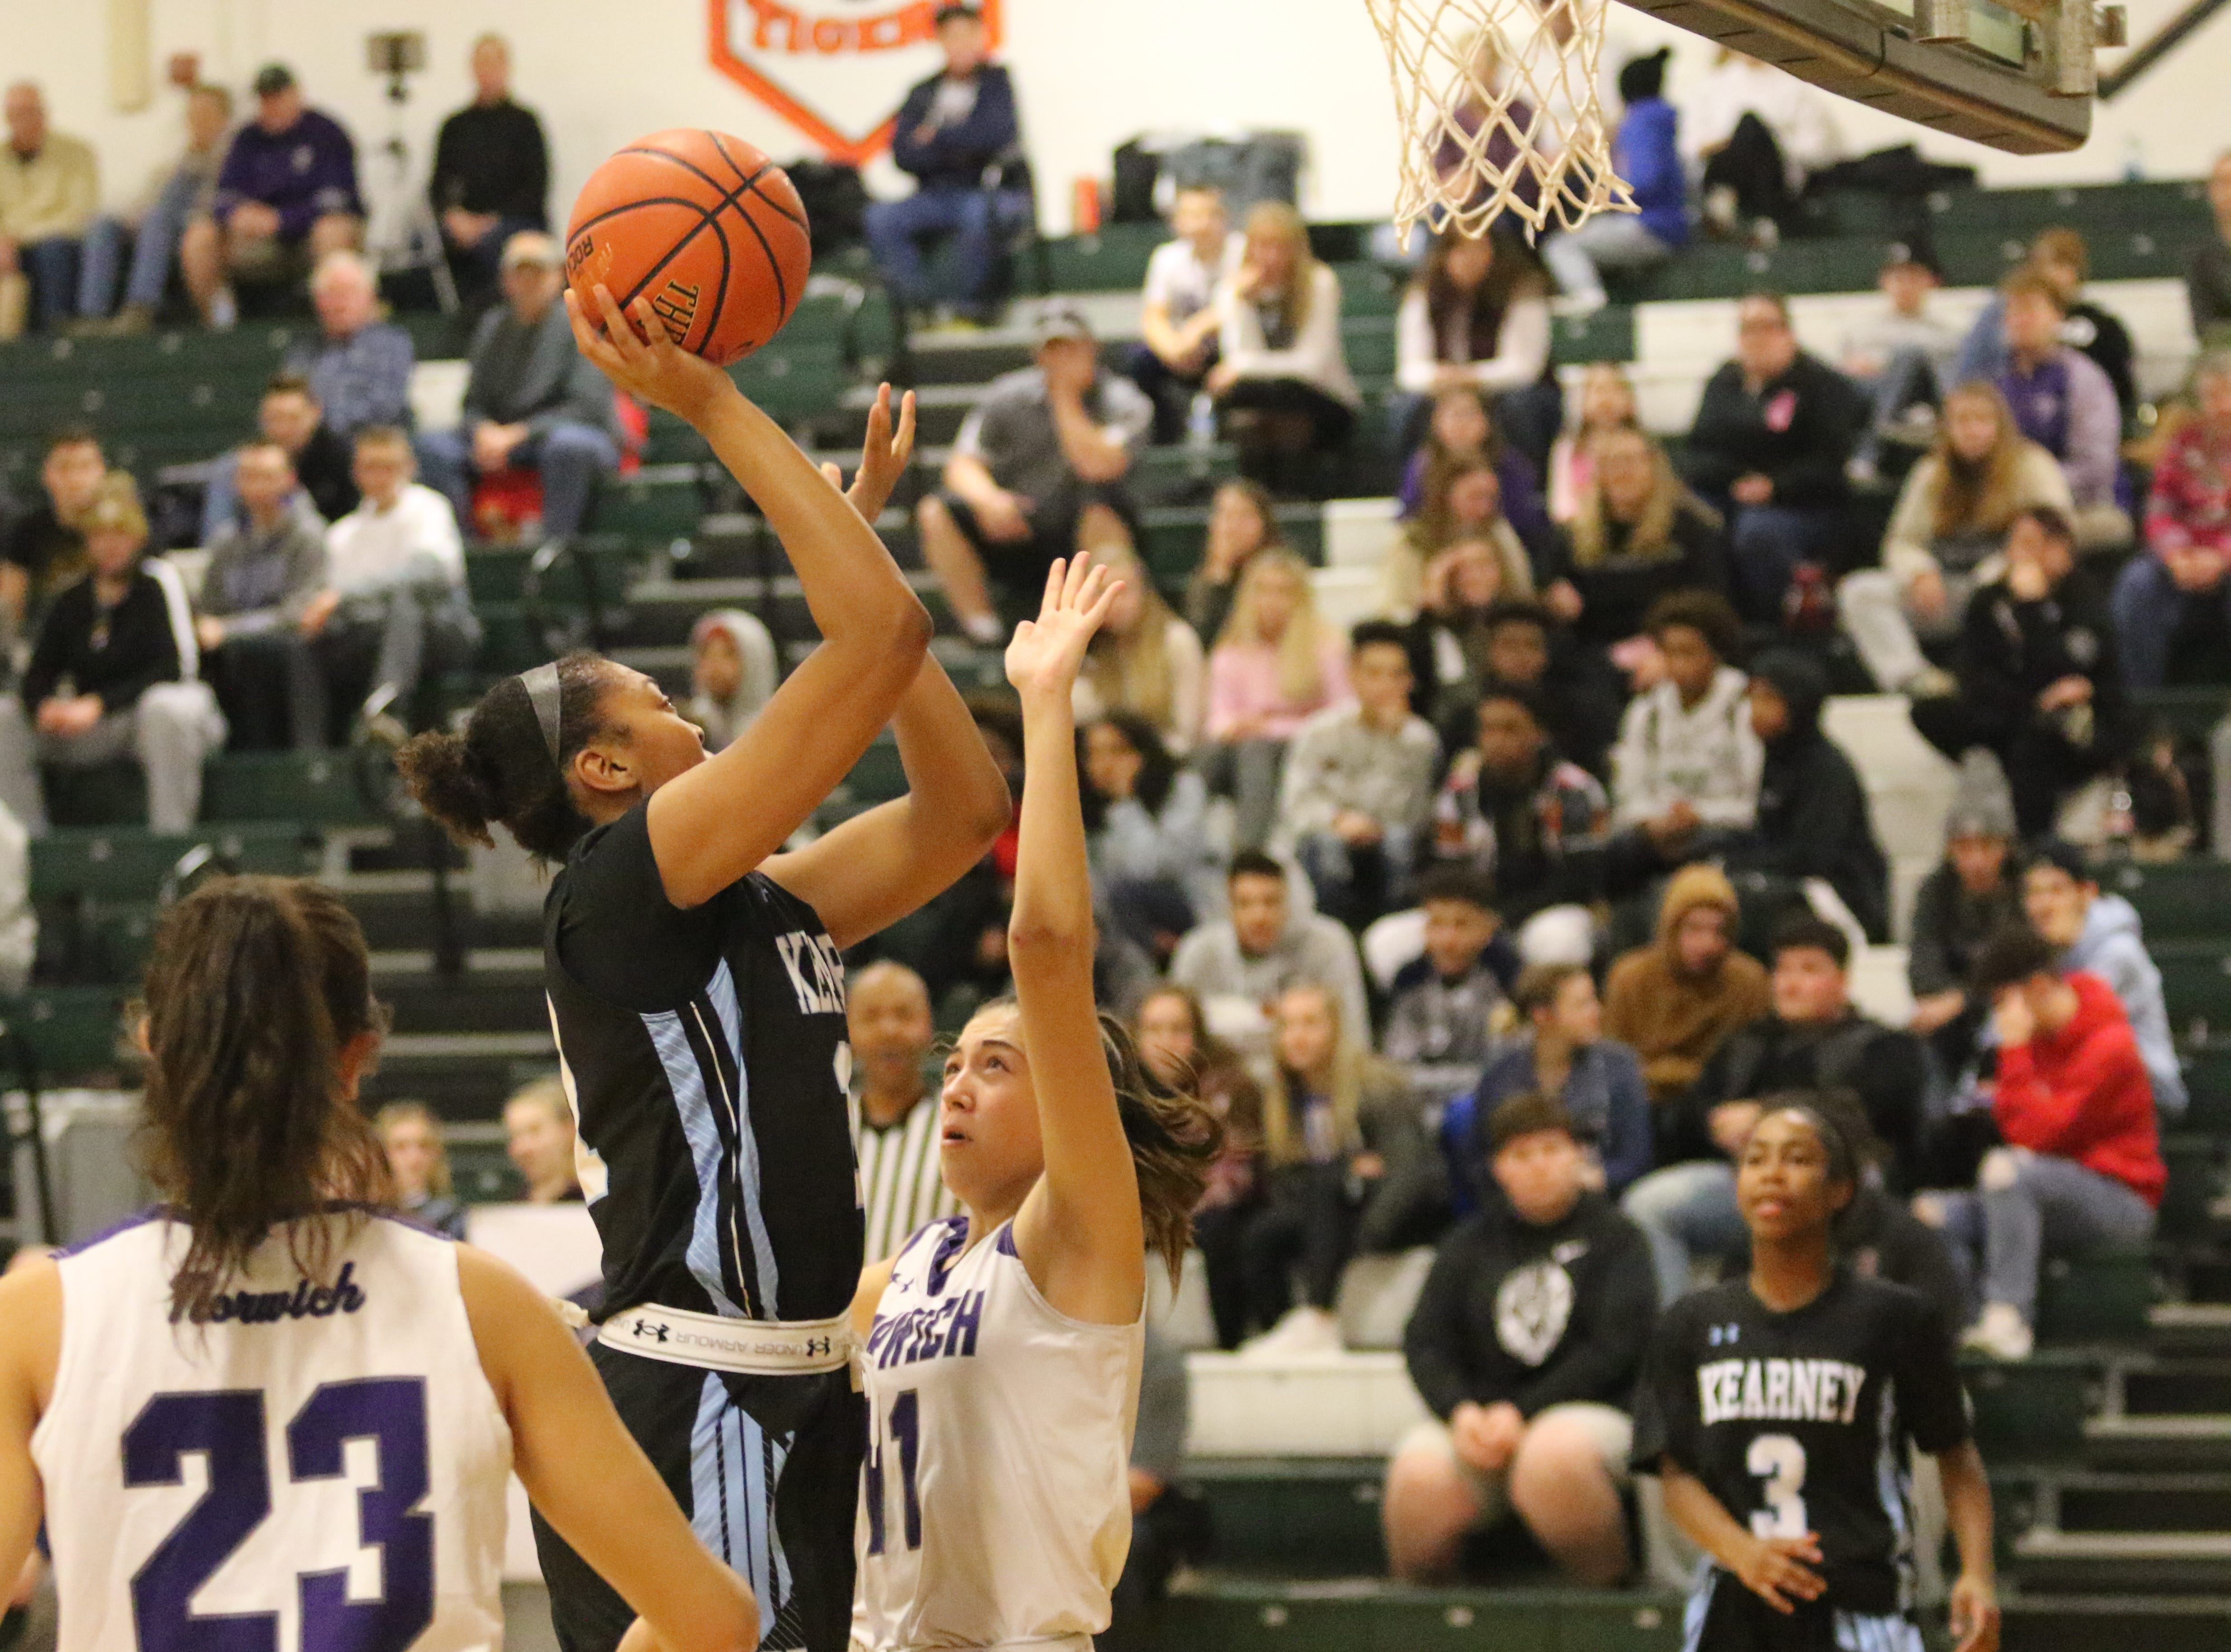 Bishop Kearney was a 72-38 winner over Norwich in a girls quarterfinal at the Josh Palmer Fund Elmira Holiday Inn Classic on Dec. 27, 2018 at Elmira High School.